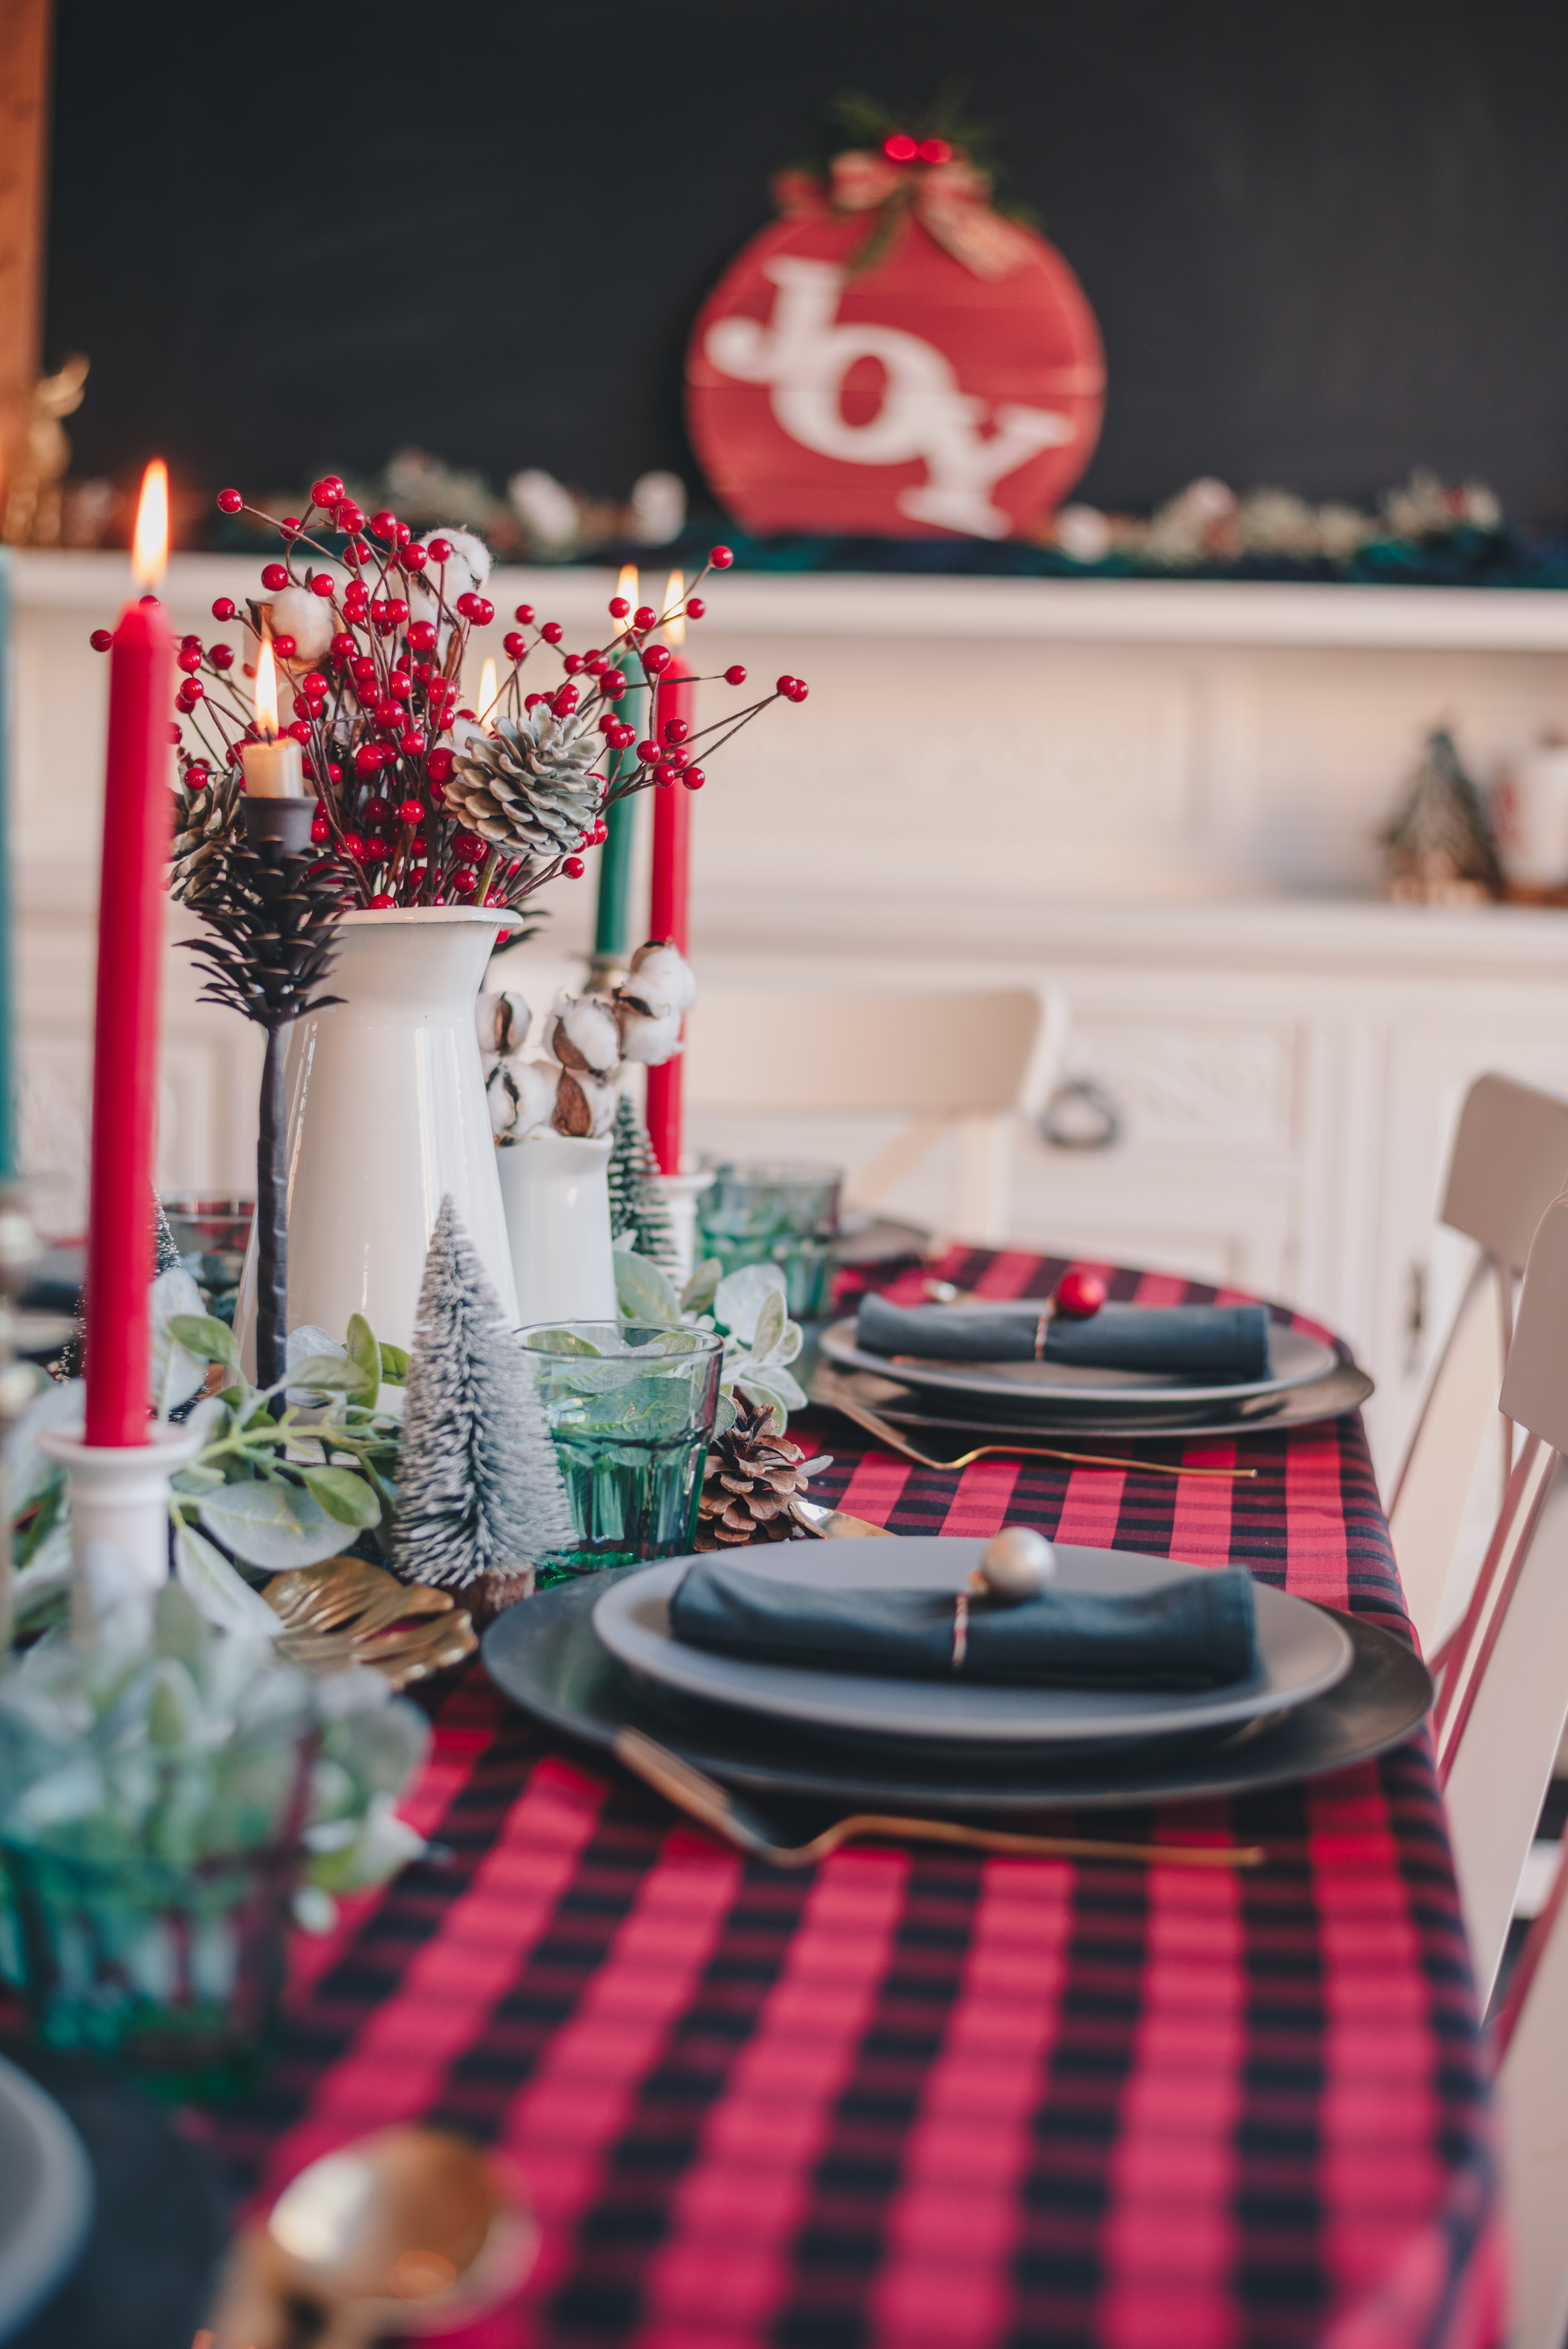 Red Candles On Black Round Table Photo Free Home Decor Image On Unsplash